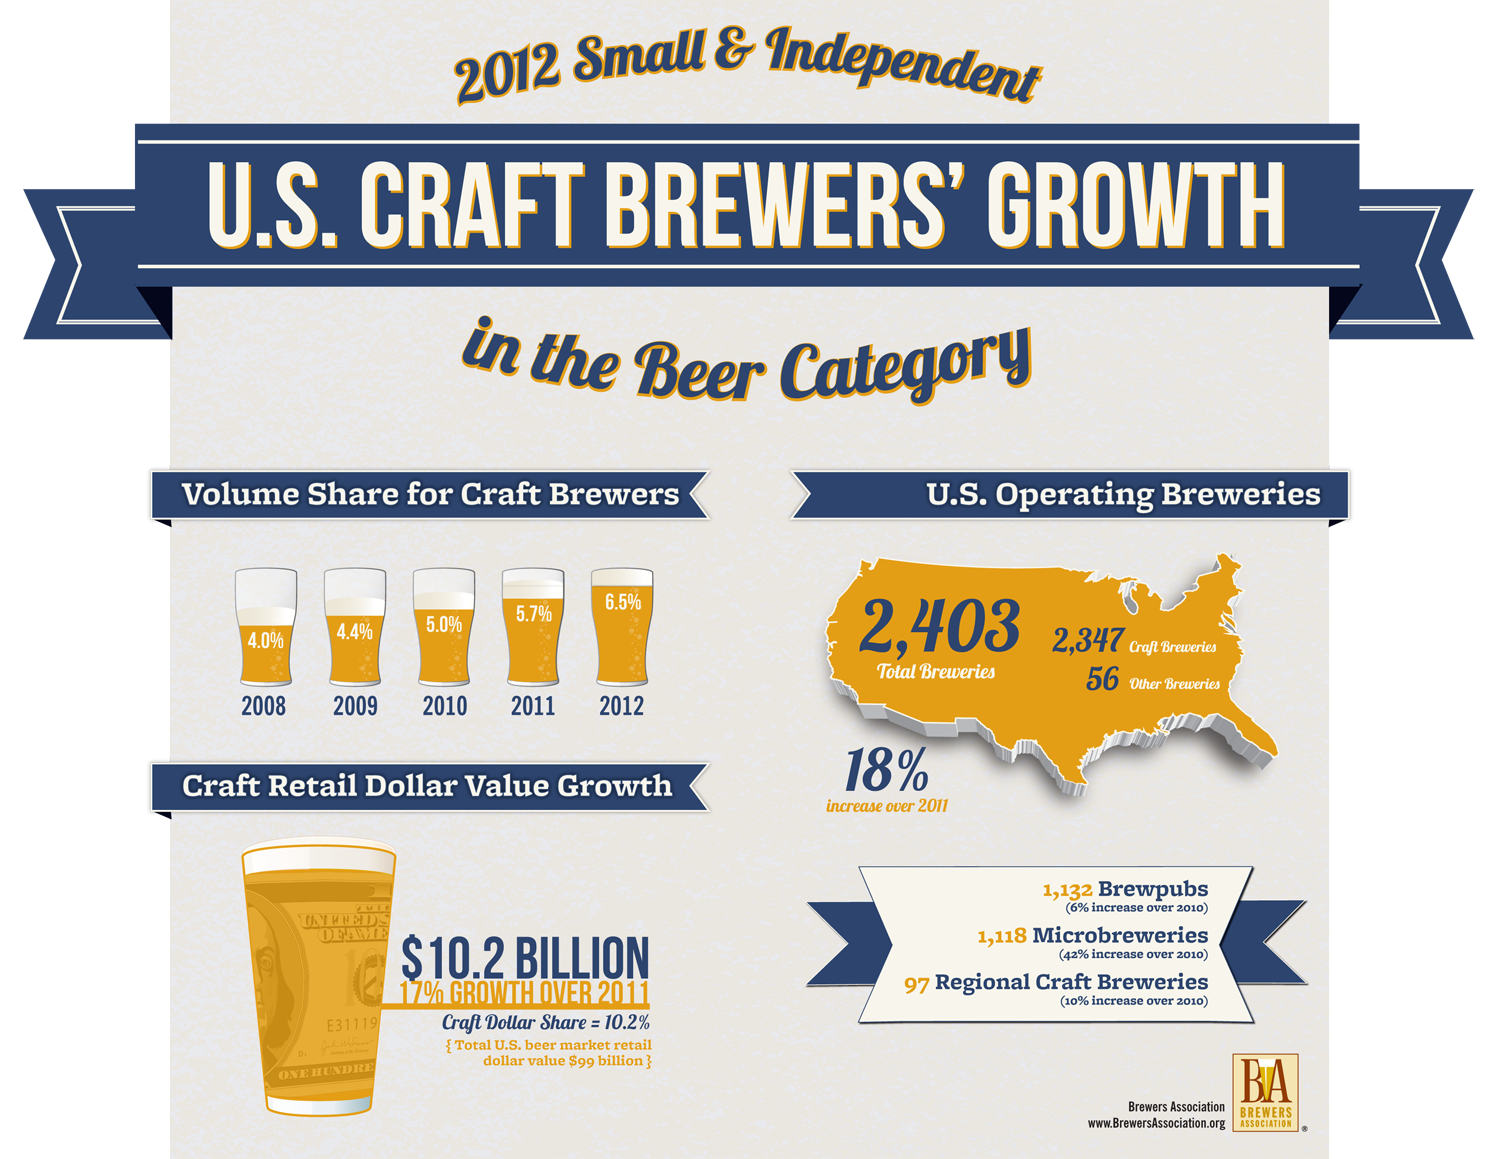 2012 Small and Independent Craft Brewers' Growth